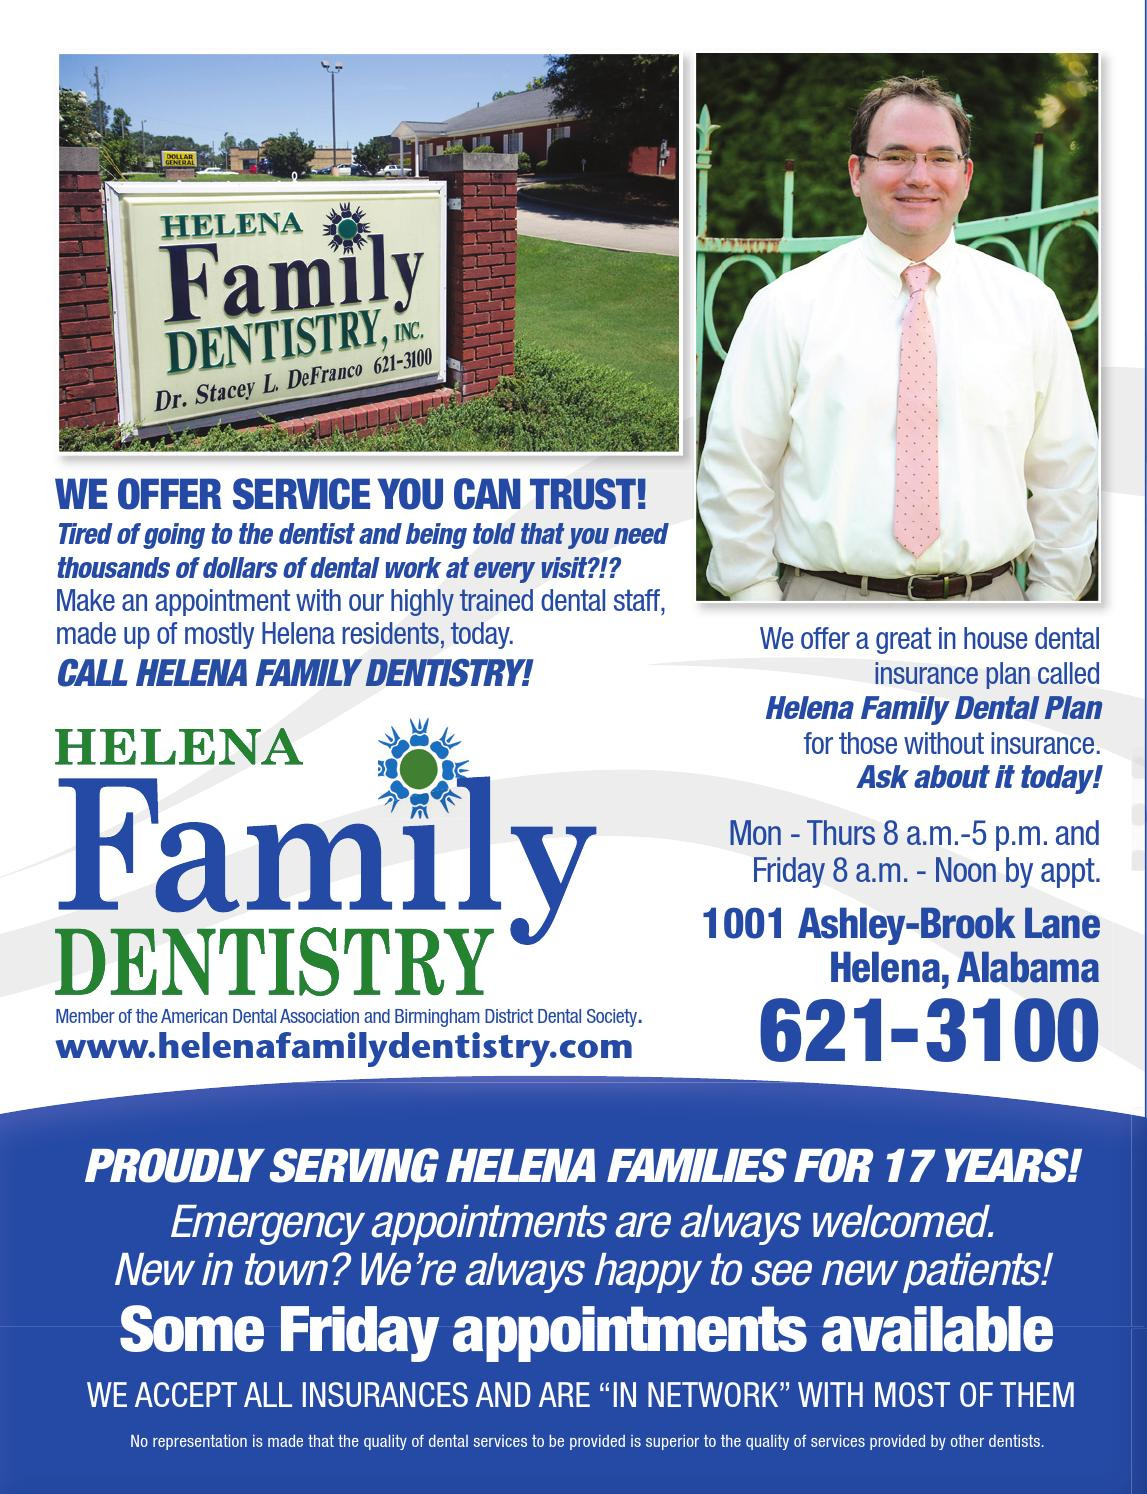 In House Dental Plans Unique Helena City News by Dave Smith issuu